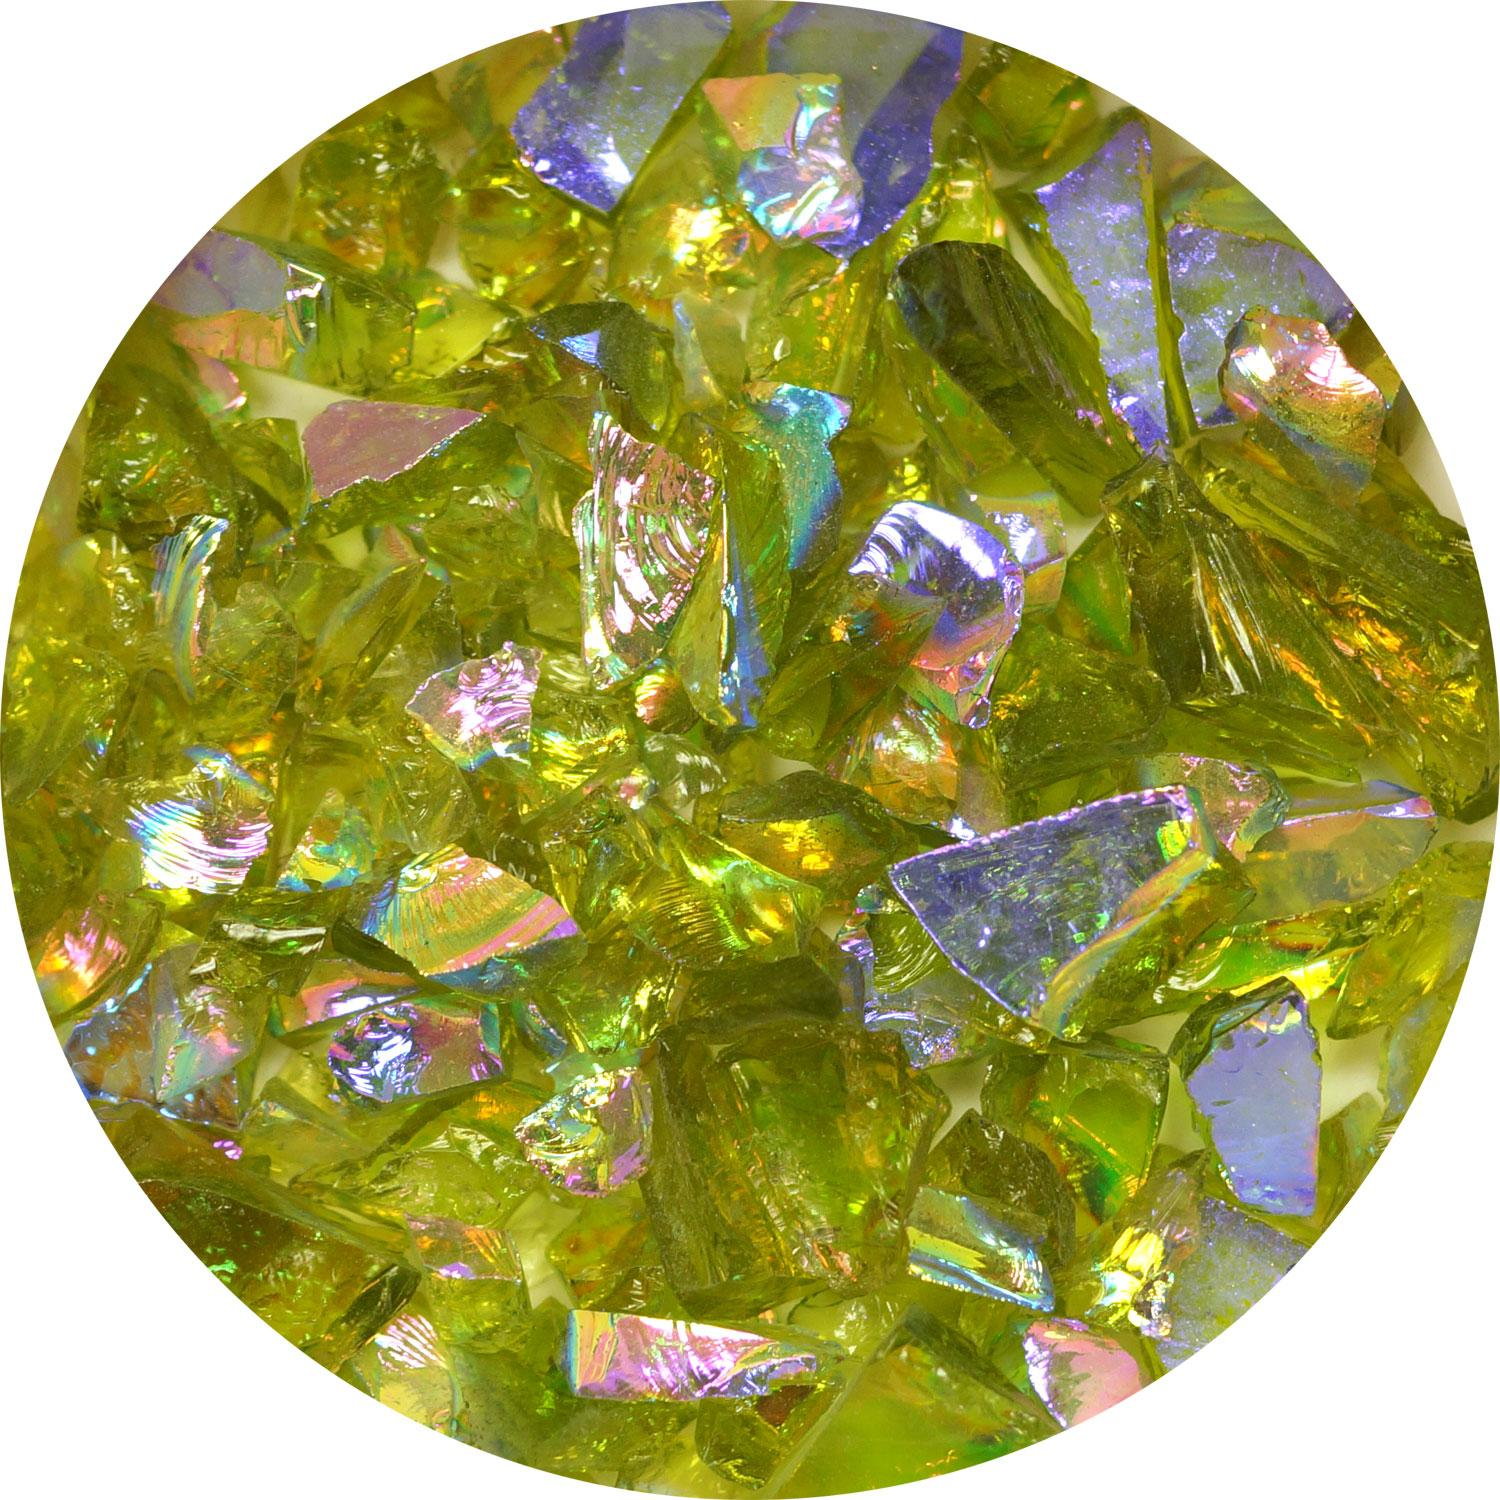 3 oz. Yellow Green/Magenta Dichroic Frit on Transparent Lime Green - 96 COE